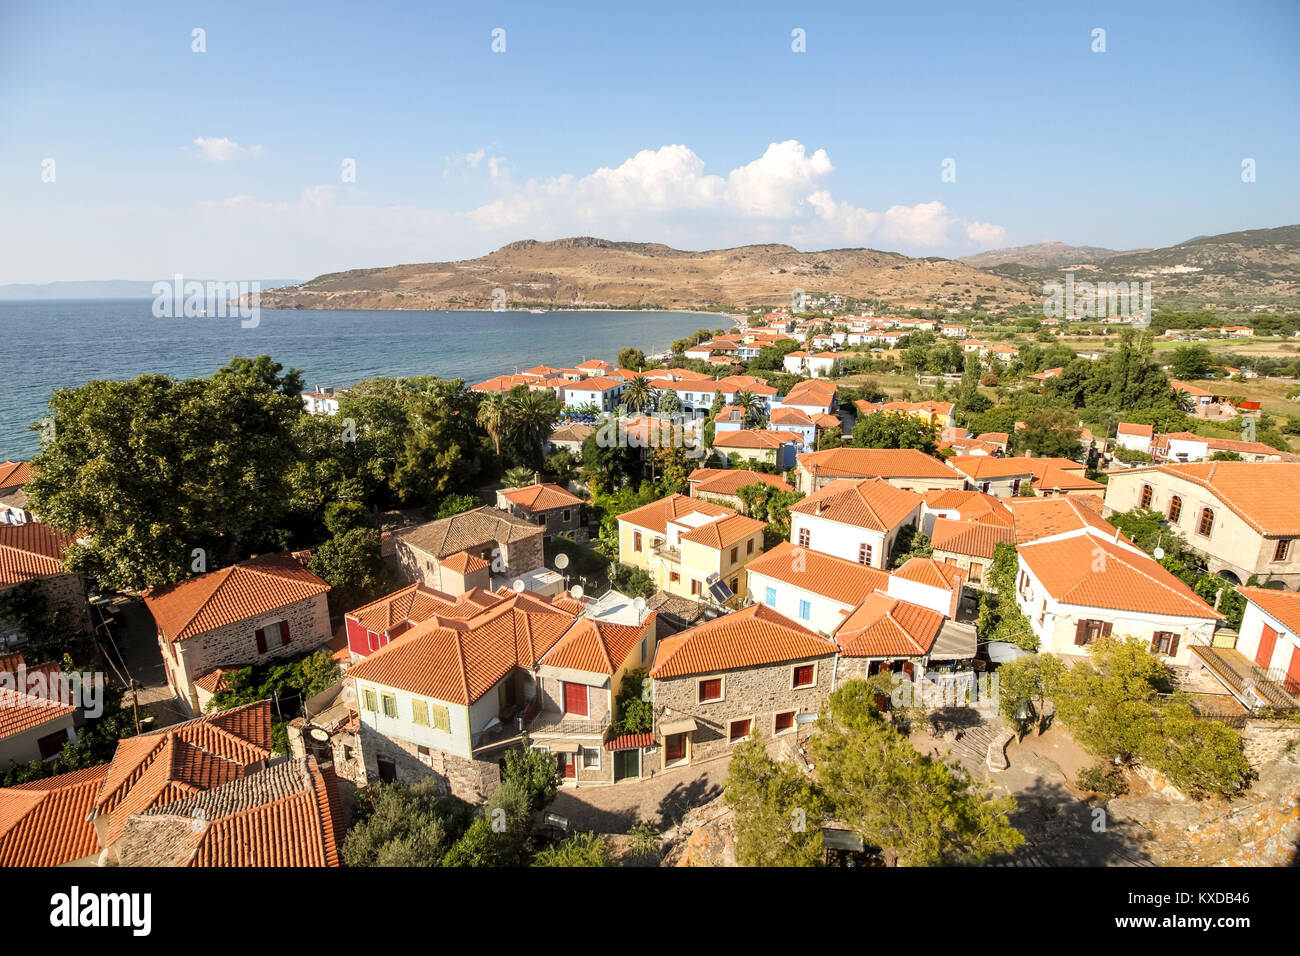 View of Petra town, in Lesvos island, Greece. - Stock Image